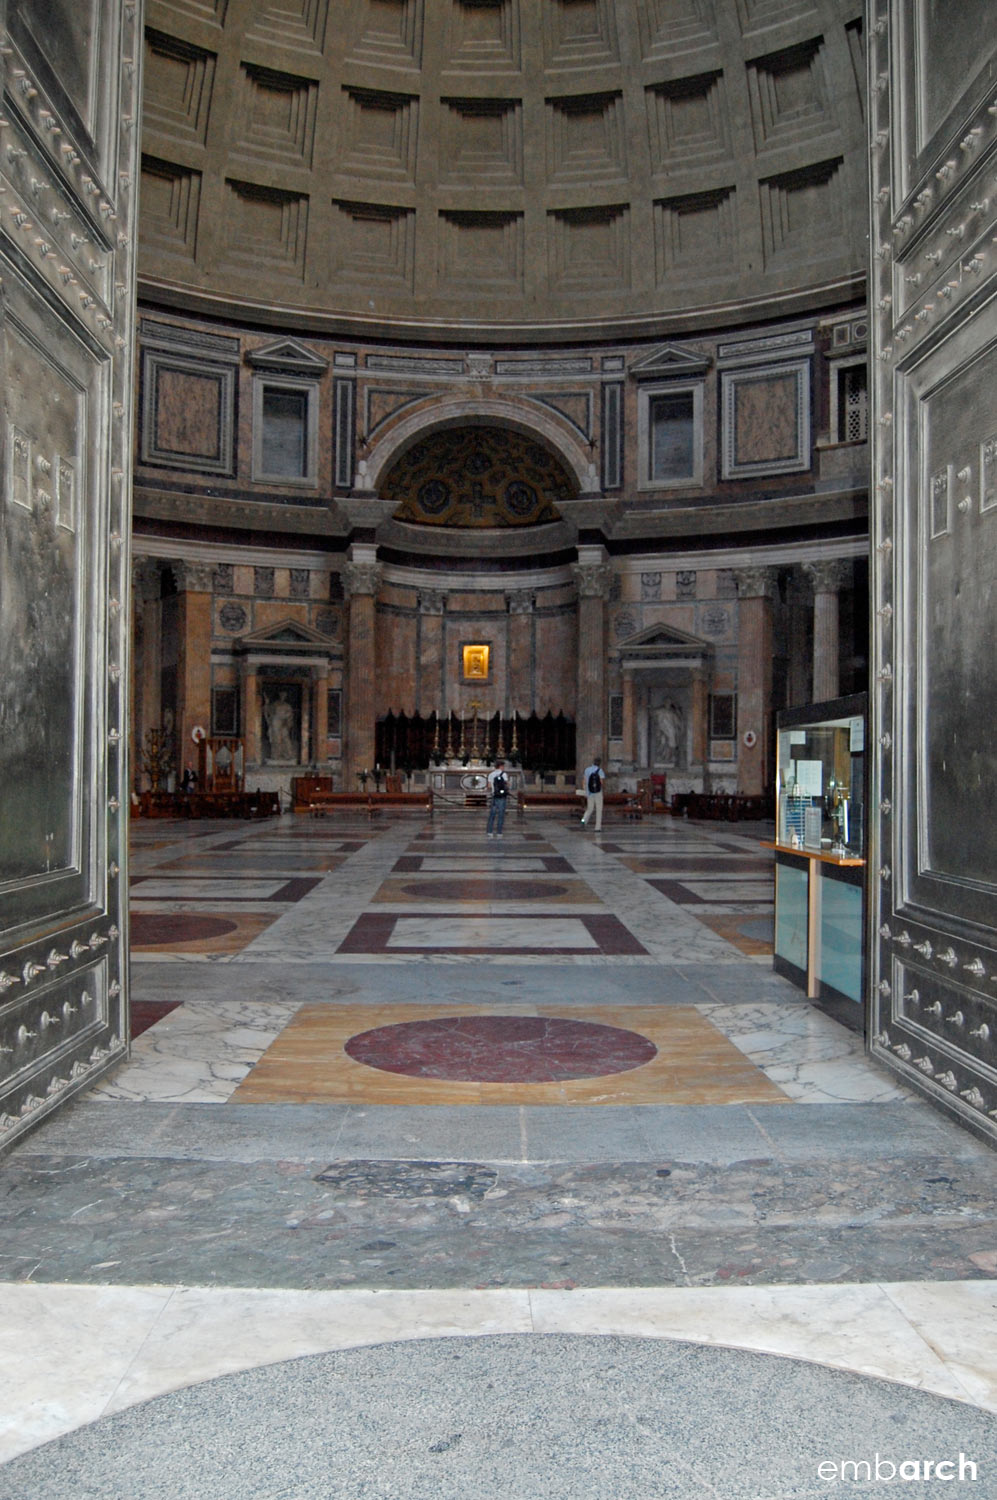 Pantheon - view of interior